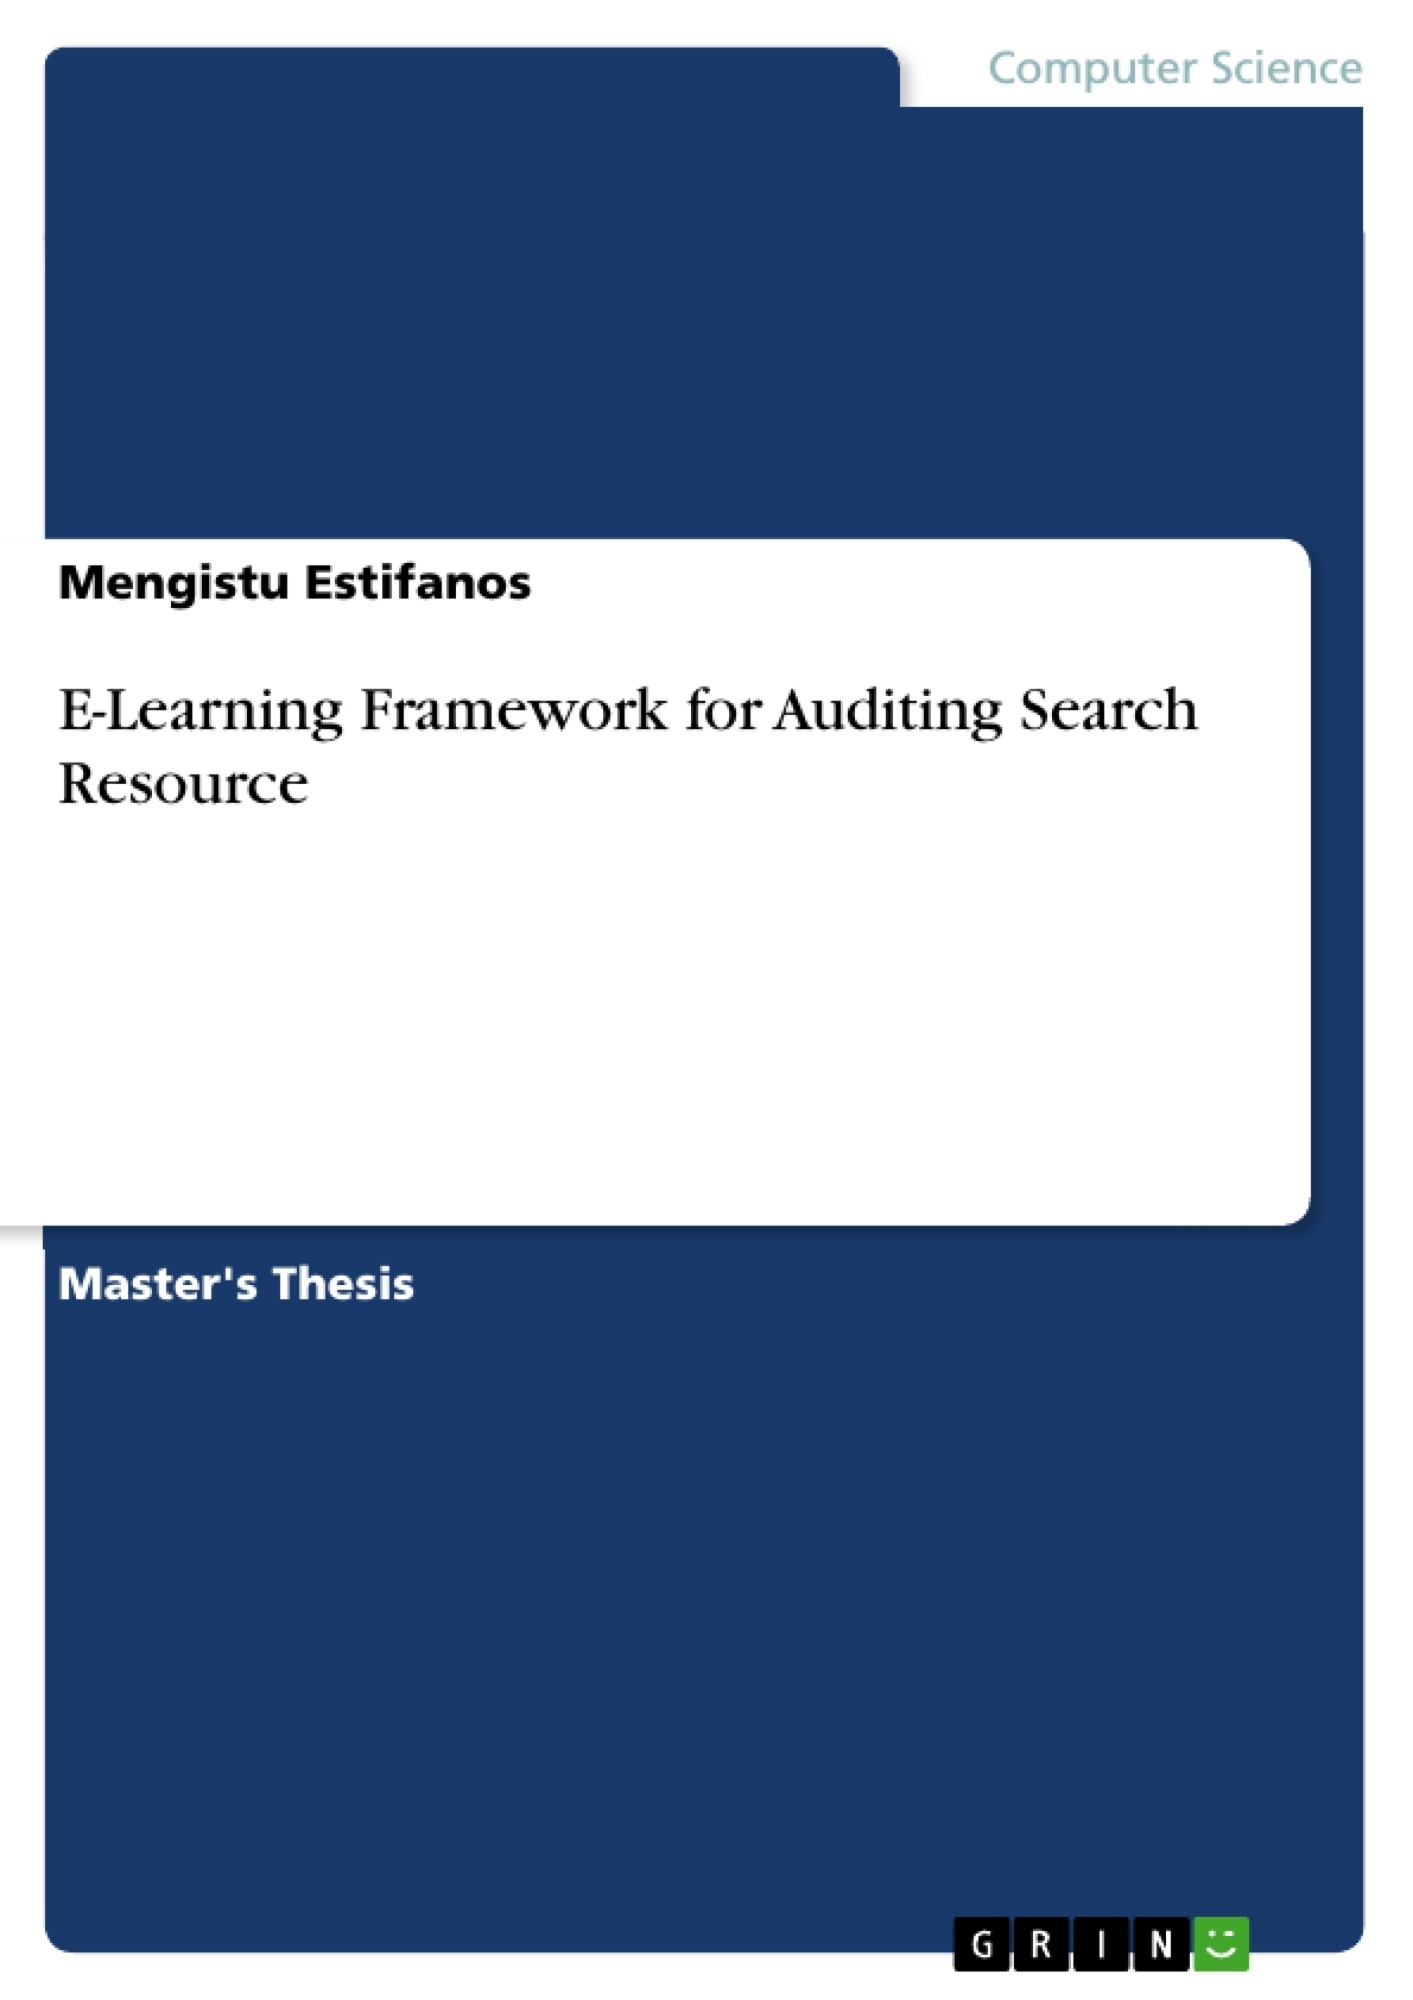 GRIN - E-Learning Framework for Auditing Search Resource